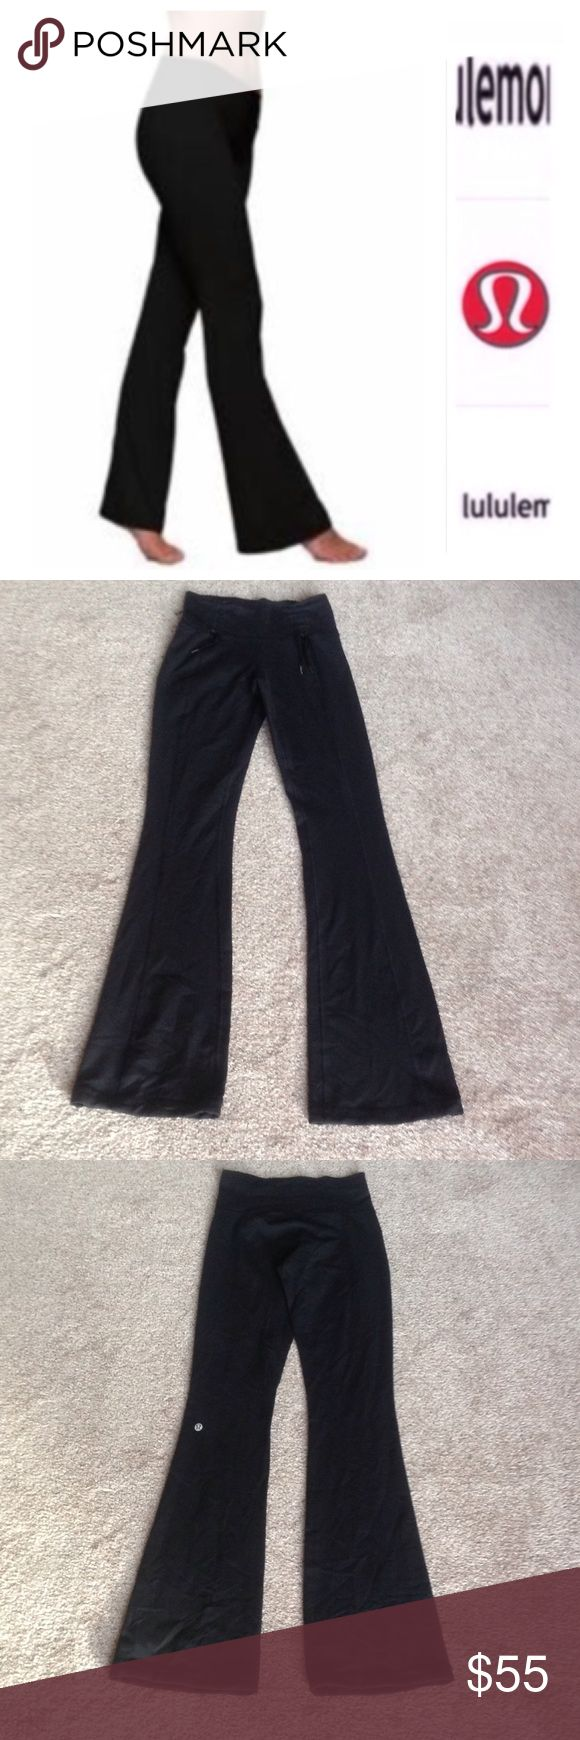 "Lululemon black flare leggings tall In like new condition. Probably worn just 3 times. There is a string on the end of the pants to gather as an option, please see 3rd photo. Inseam is 33"" long. lululemon athletica Pants Boot Cut & Flare"